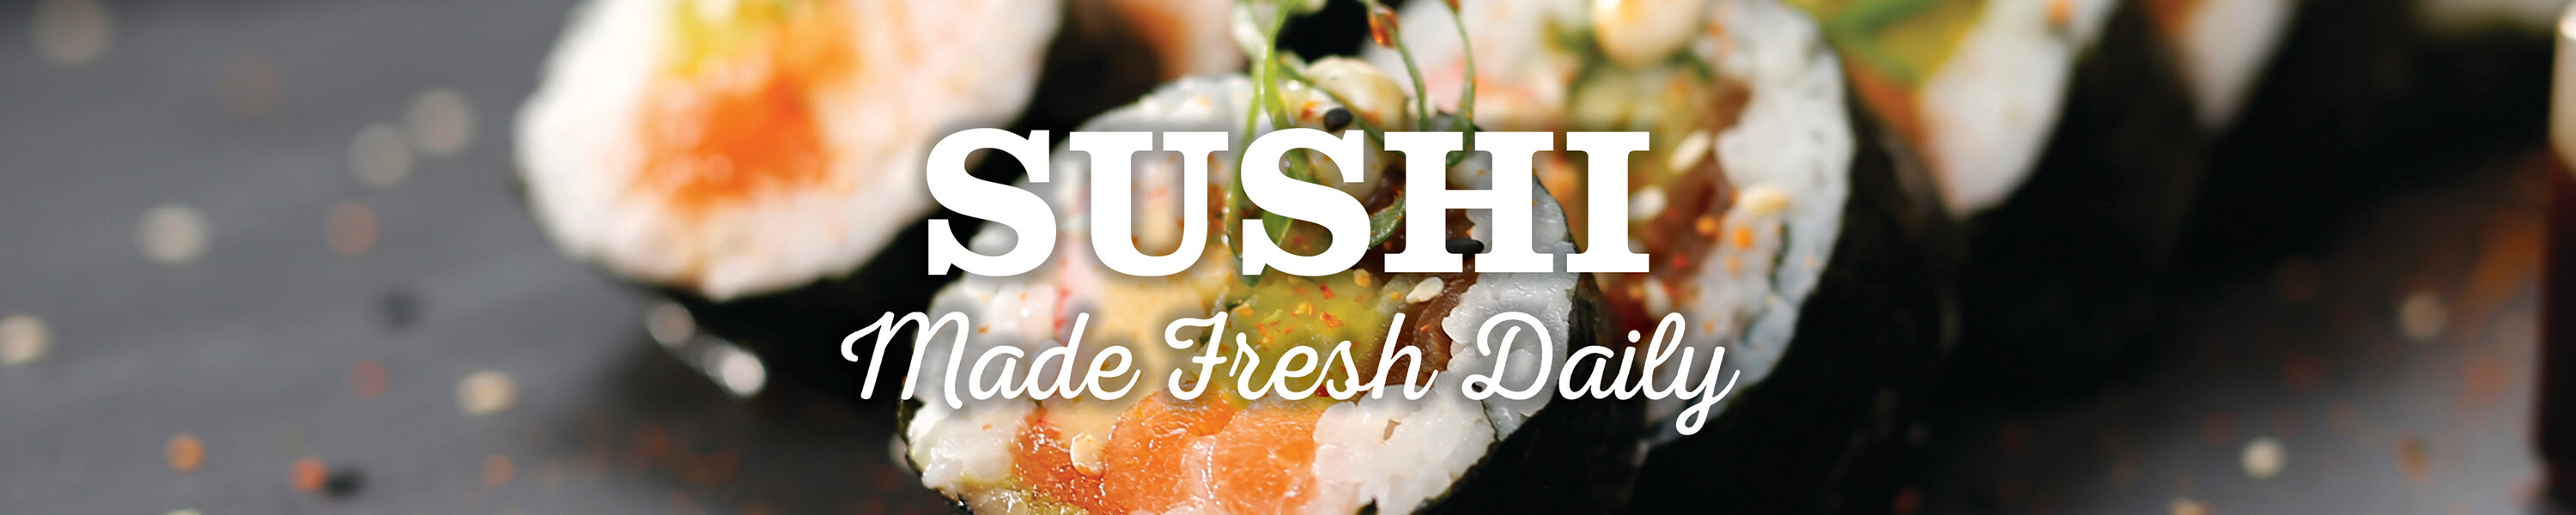 Sushi Made Fresh Daily